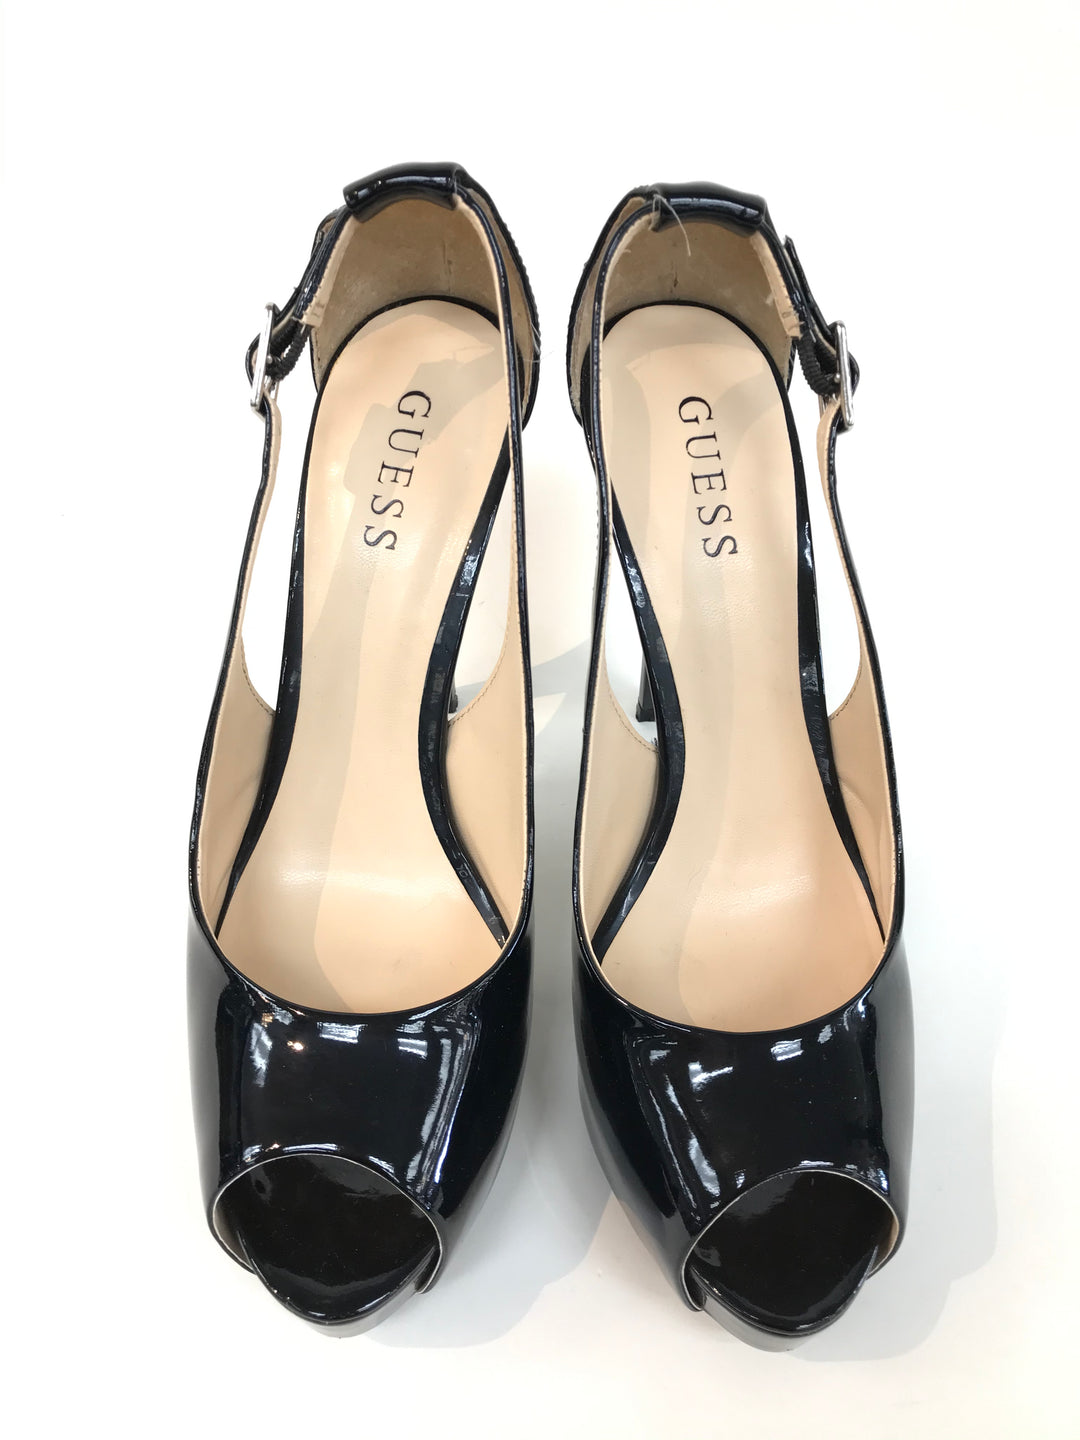 Primary Photo - BRAND: GUESS <BR>STYLE: SANDALS HIGH <BR>COLOR: BLACK <BR>SIZE: 8.5 <BR>SKU: 262-26211-138877<BR>LIKE NEW CONDITION <BR>AS IS